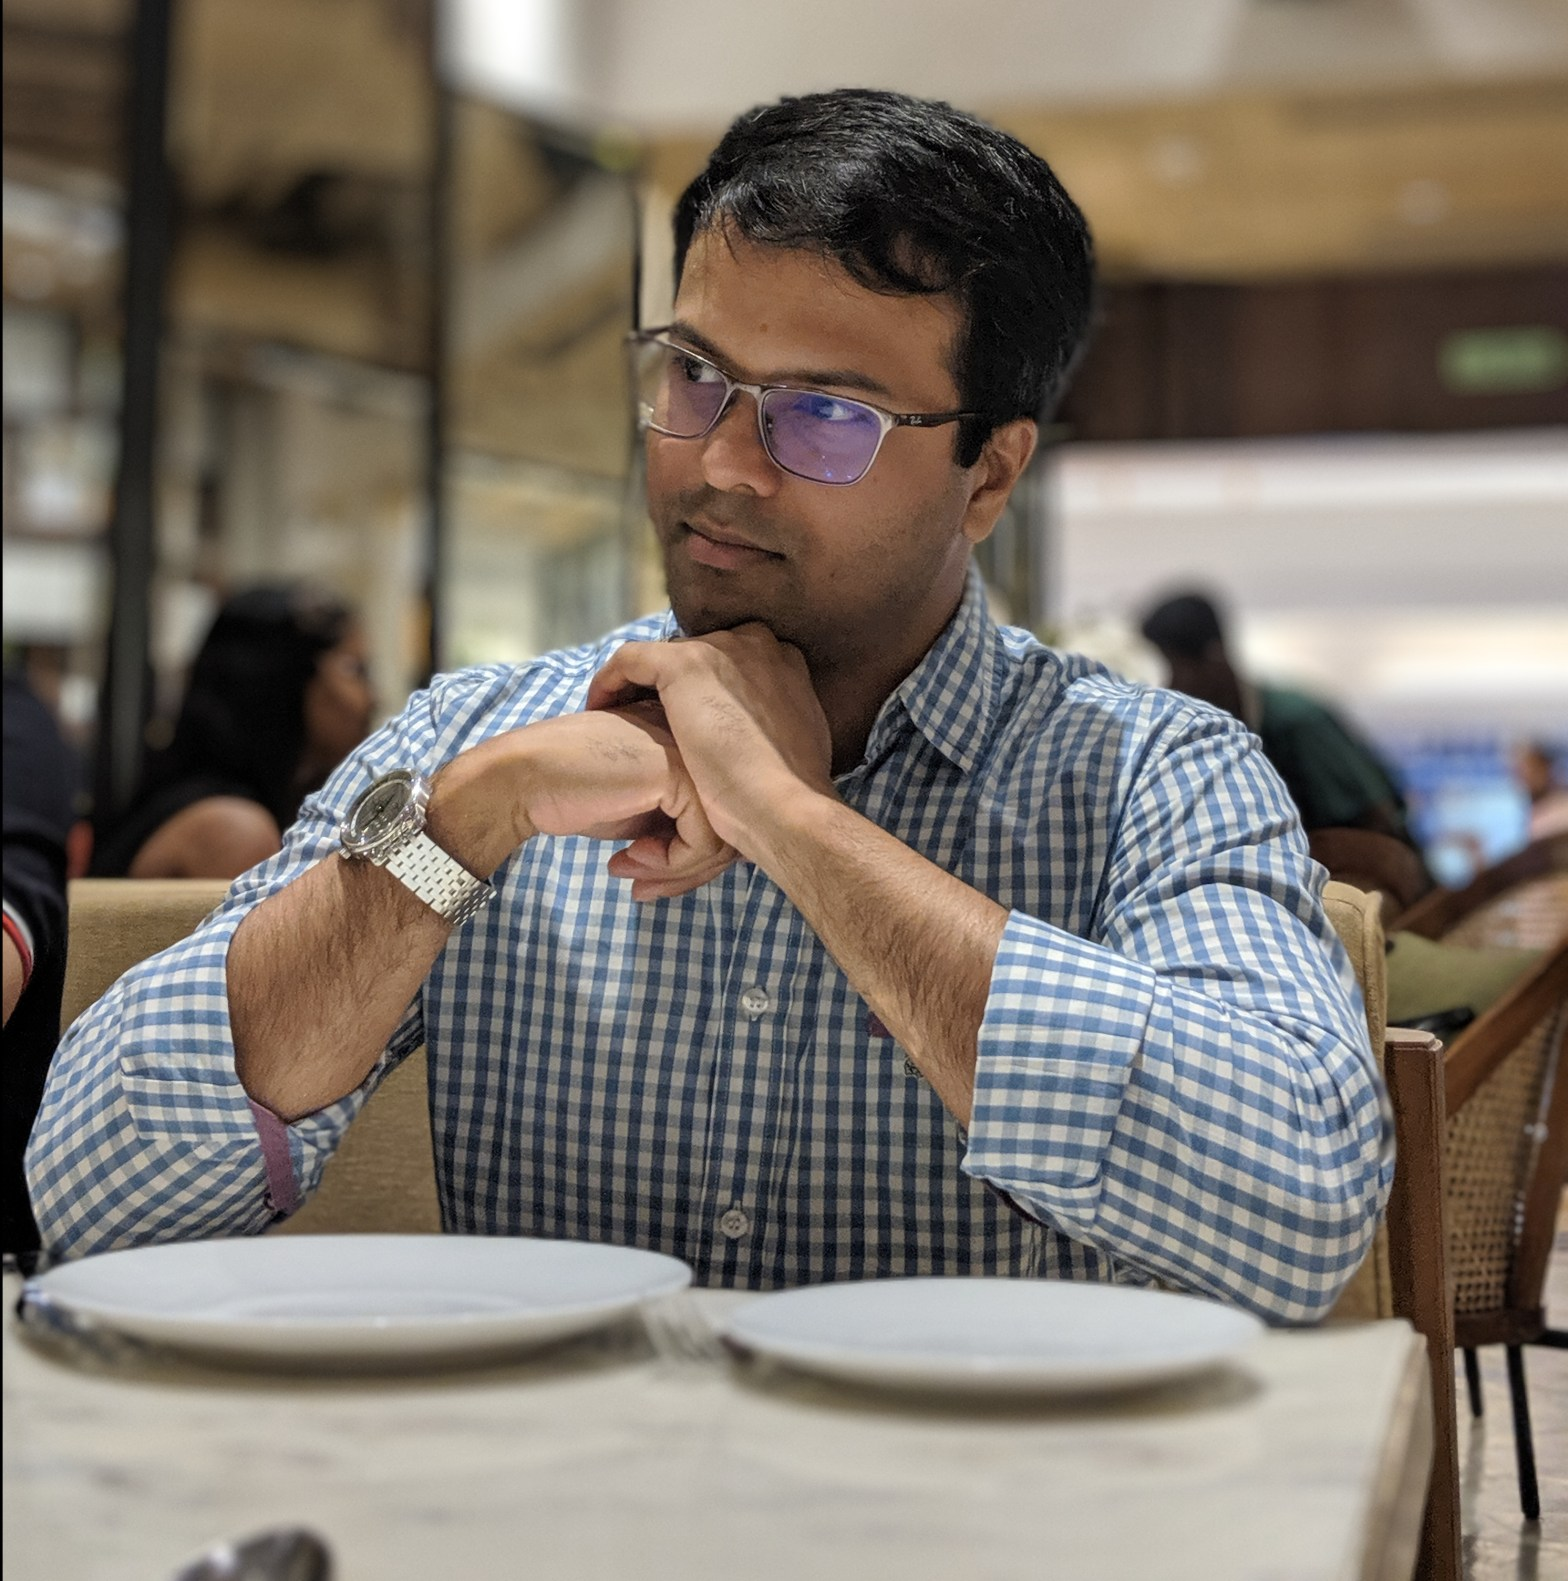 Bikram Chaudhuri is a dispute resolution lawyer who opted for the LL.M. in Comparative and International Dispute Resolution at Queen Mary University of London